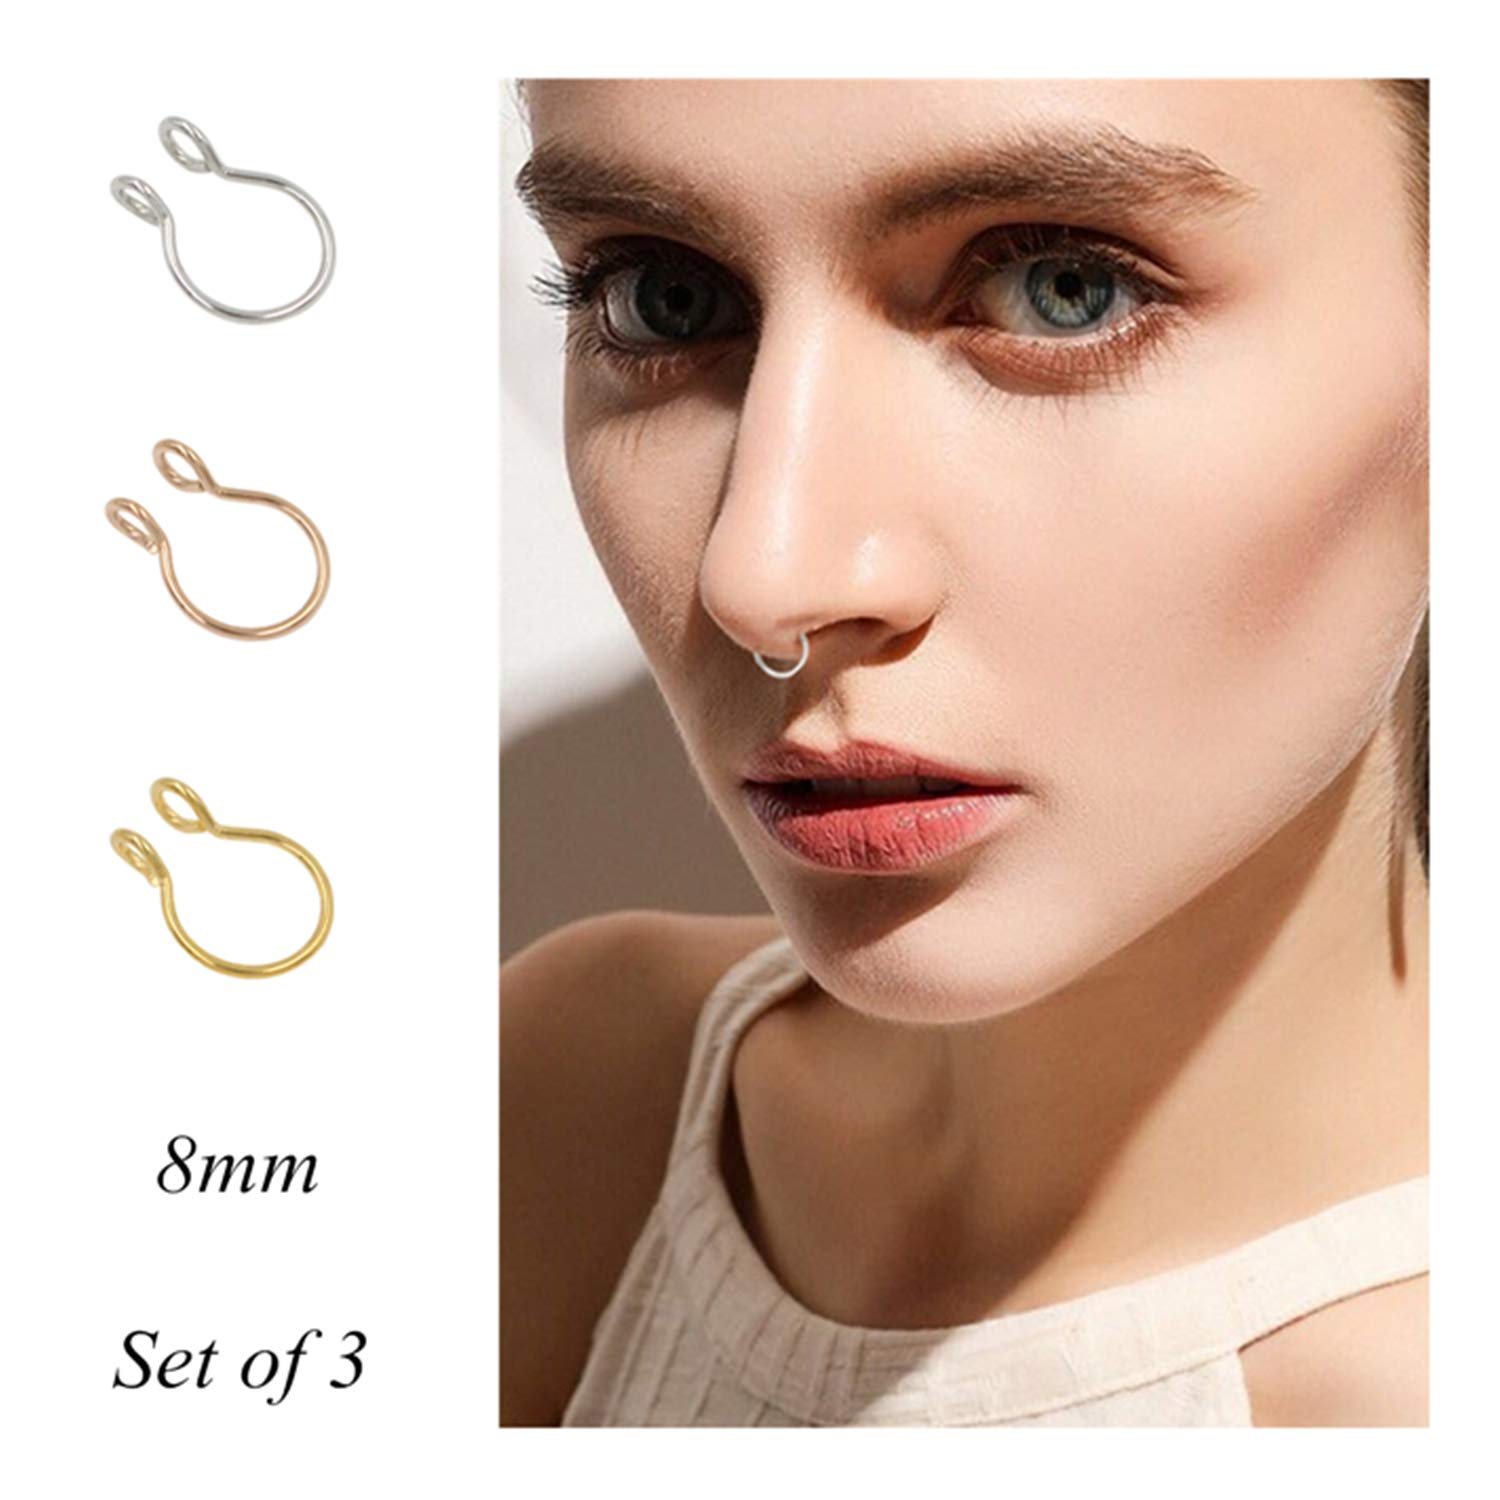 Vcmart Fake Nose Rings Hoop 16pcs Stainless Steel Faux Fake Lip Ear Nose Septum Ring Non Pierced Clip On Nose Hoop Rings Novelty More Body Jewelry Jewelry Piercing Jewelry